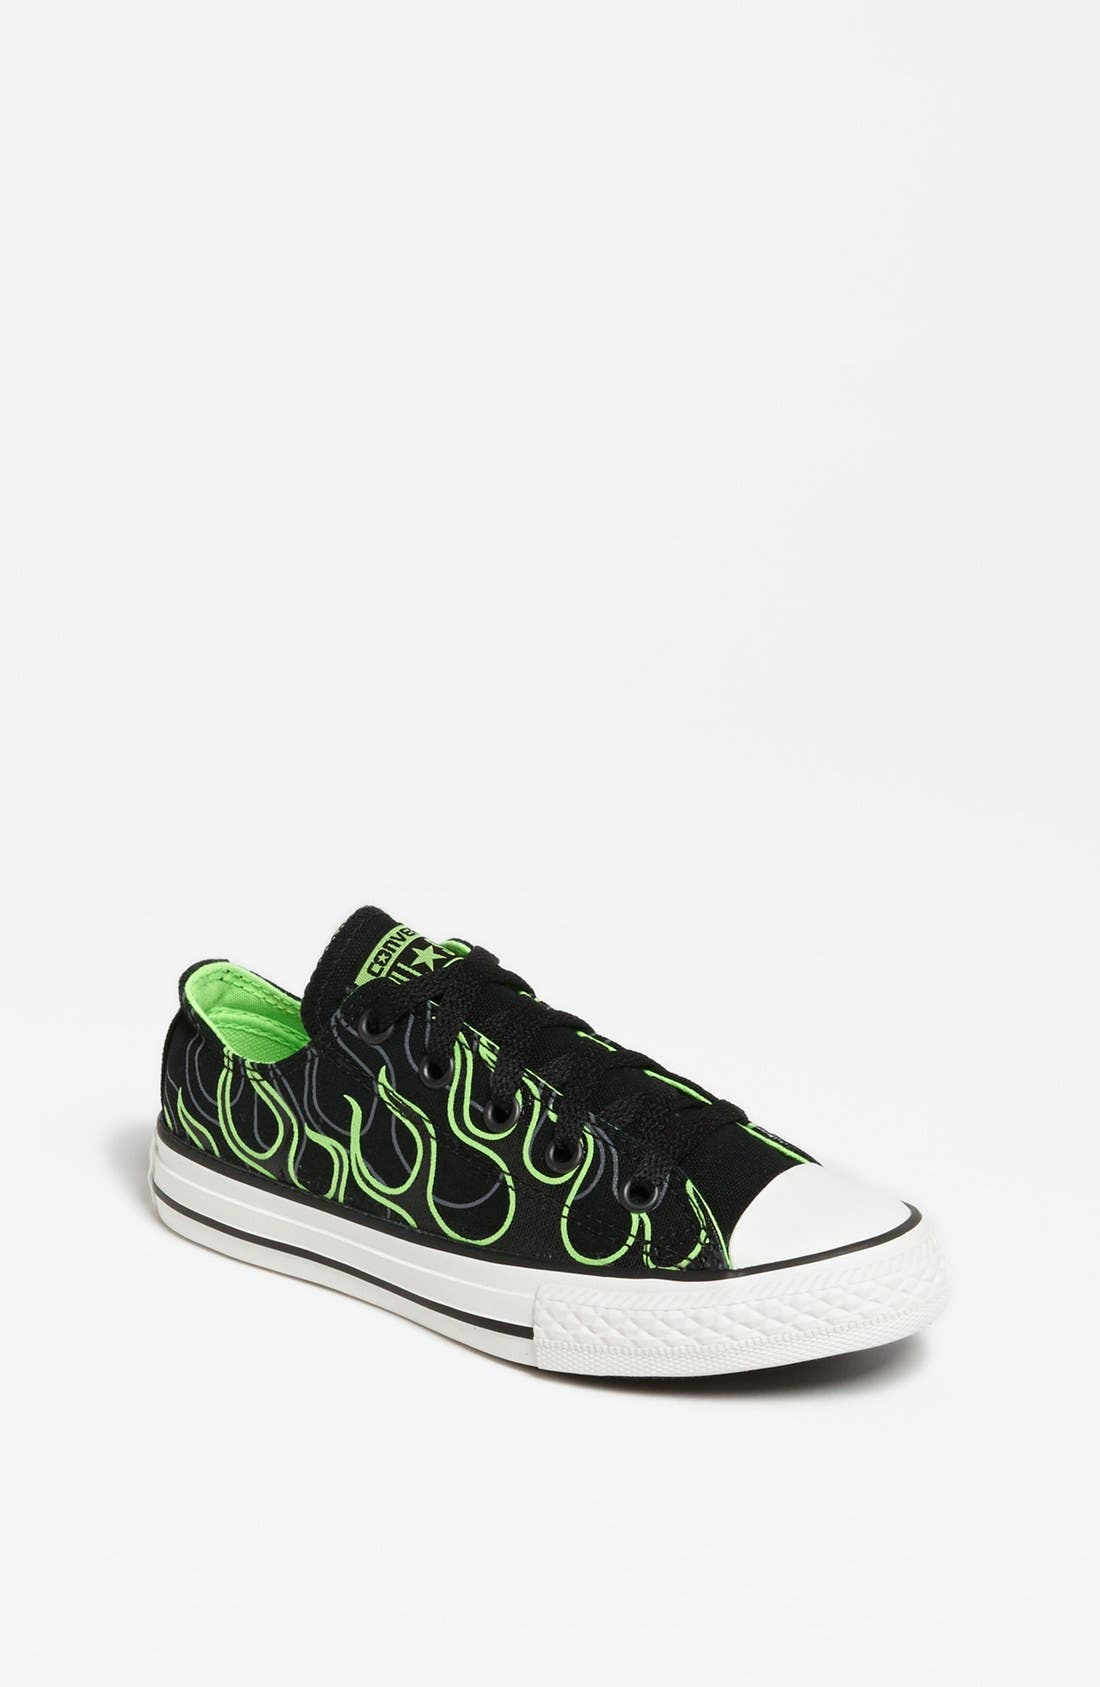 Main Image - Converse Chuck Taylor® All Star® 'Flames' Sneaker (Toddler, Little Kid & Big Kid)